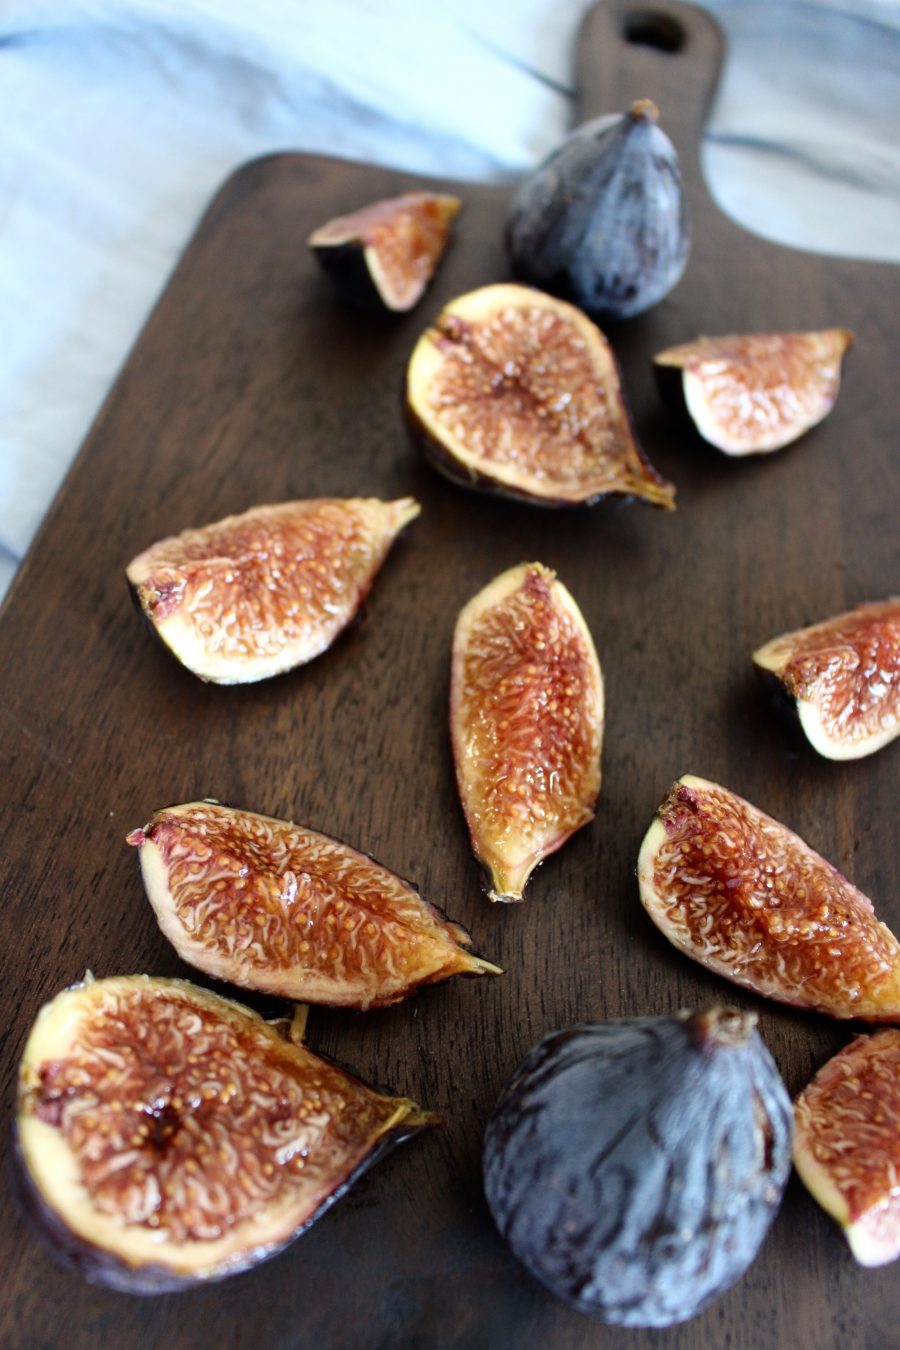 warm Porridge with caramelized figs